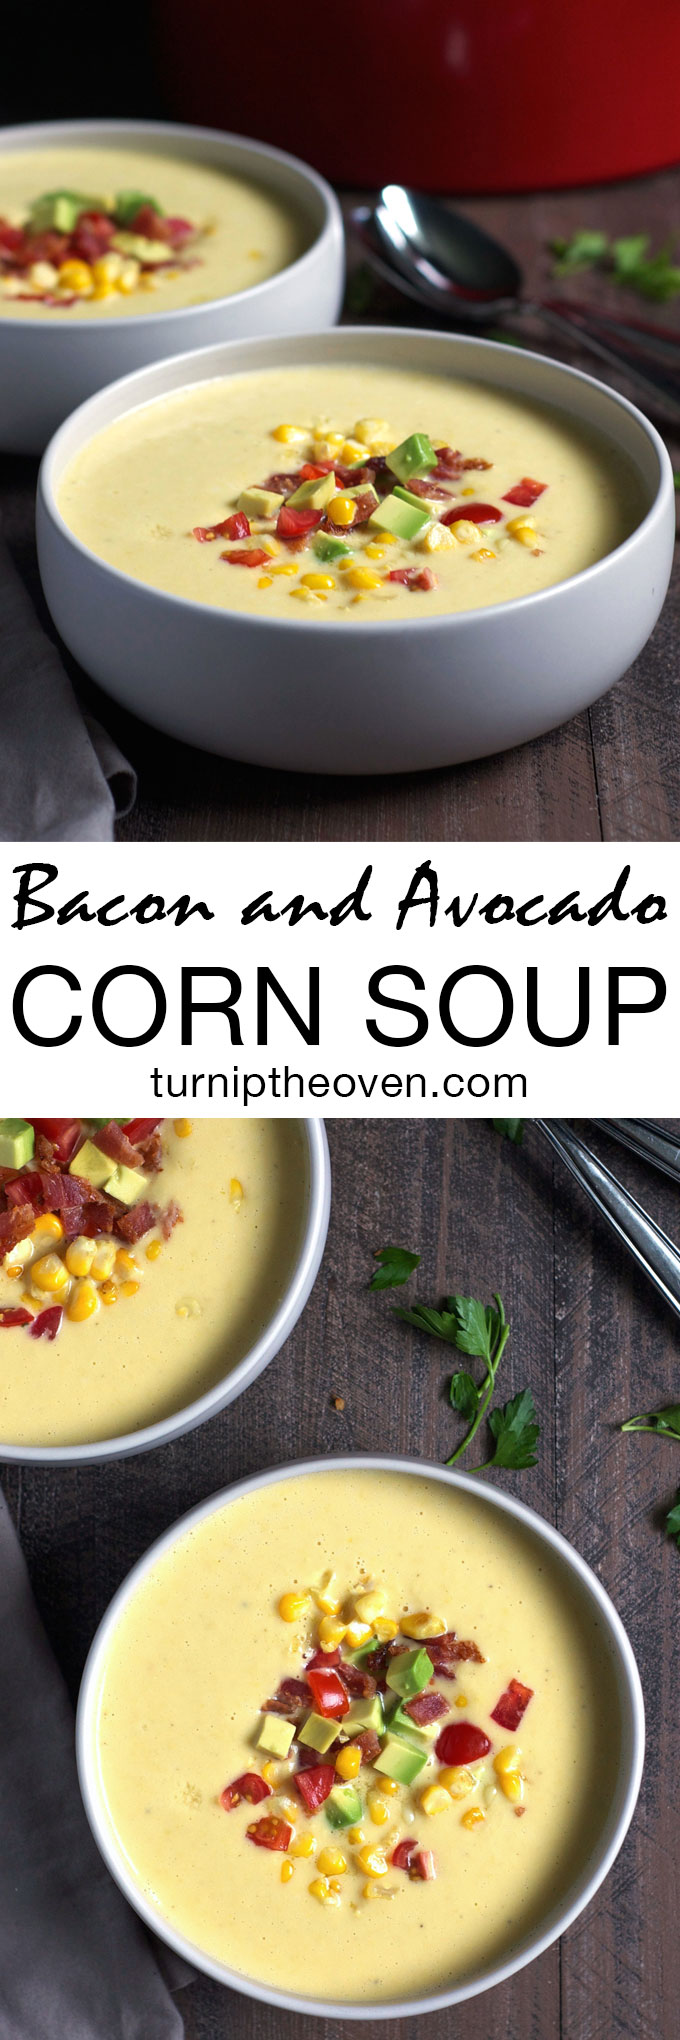 ... avocado cream avocado and bacon soup sweet corn soup summer sweet corn